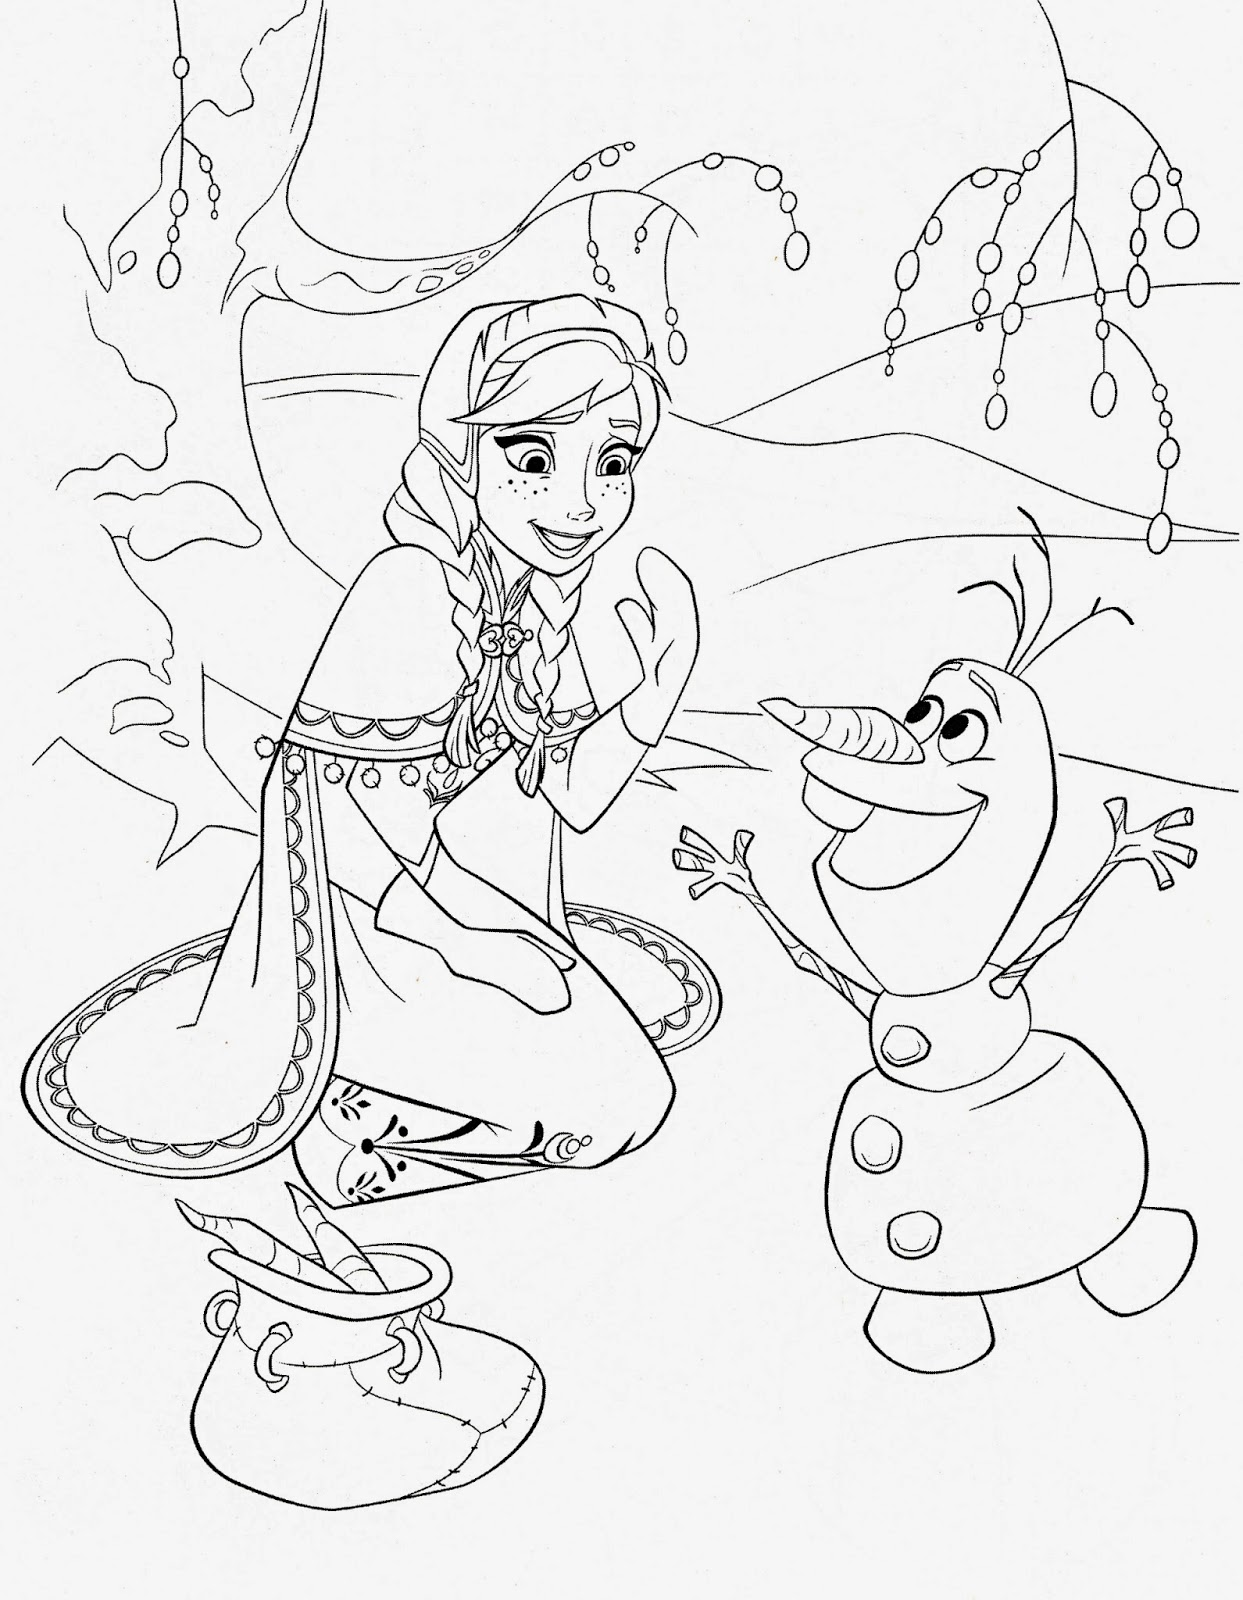 frozen colouring in pictures 15 beautiful disney frozen coloring pages free instant frozen pictures colouring in